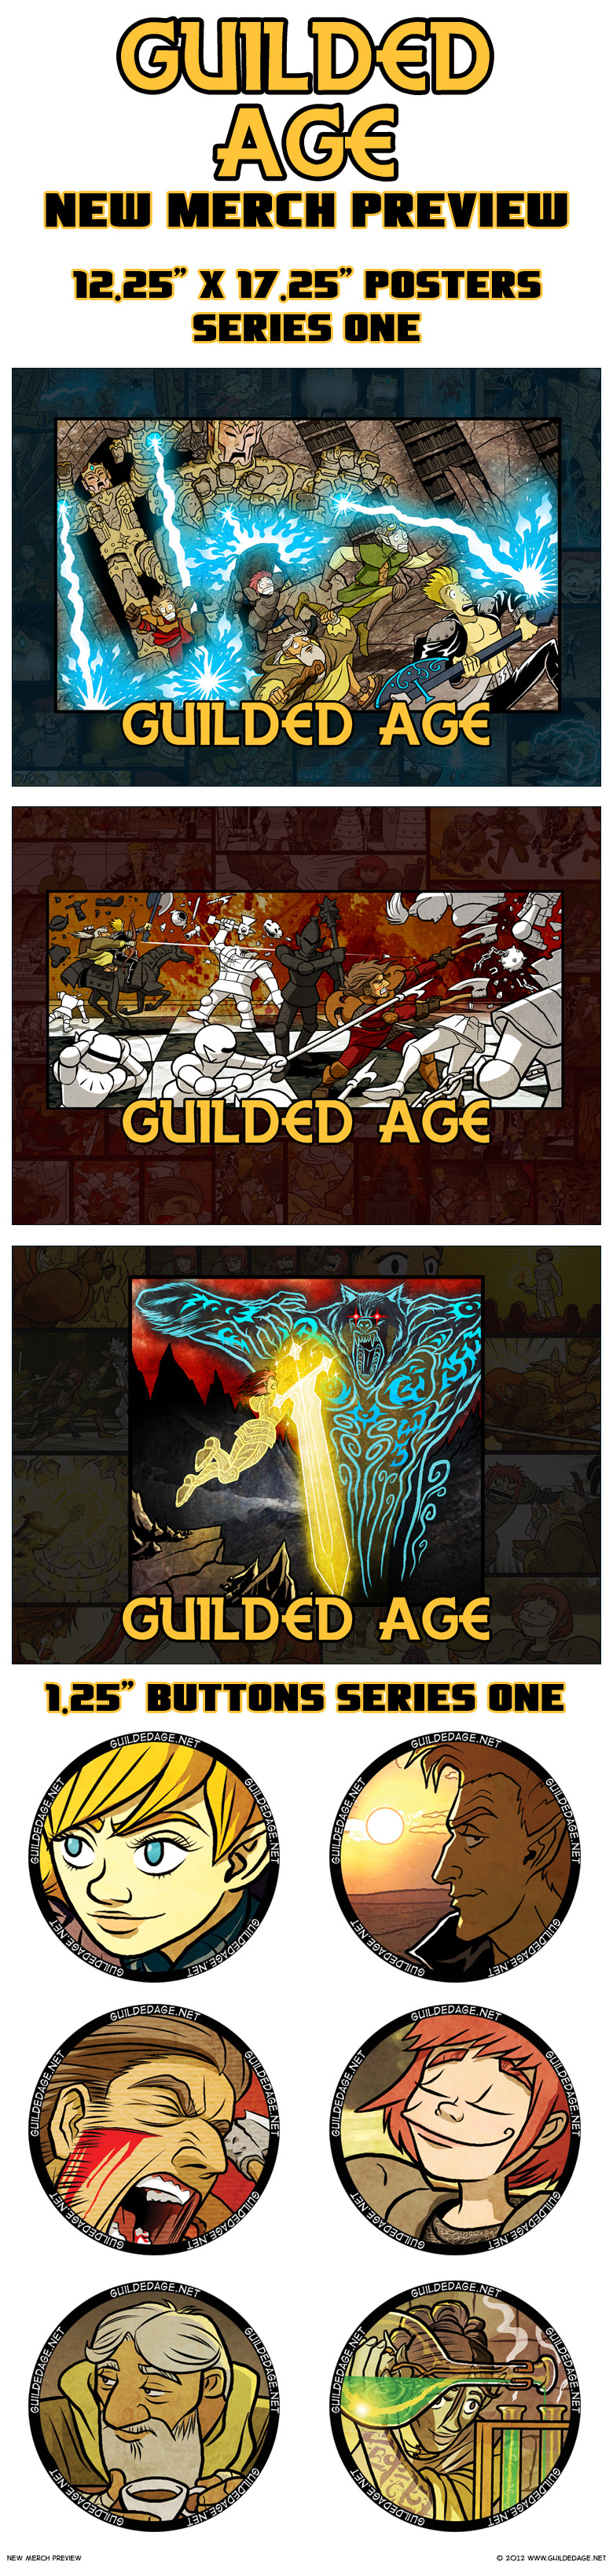 The Guilded Age fragrance line didn't test so well. 'Graiya's Wrath' was an unusually sweet-smelling apocalypse, but 'Gravedust's Desert Wanderings' was a little too dry to appreciate, and the less said the better about 'Frigg's Armpit.'